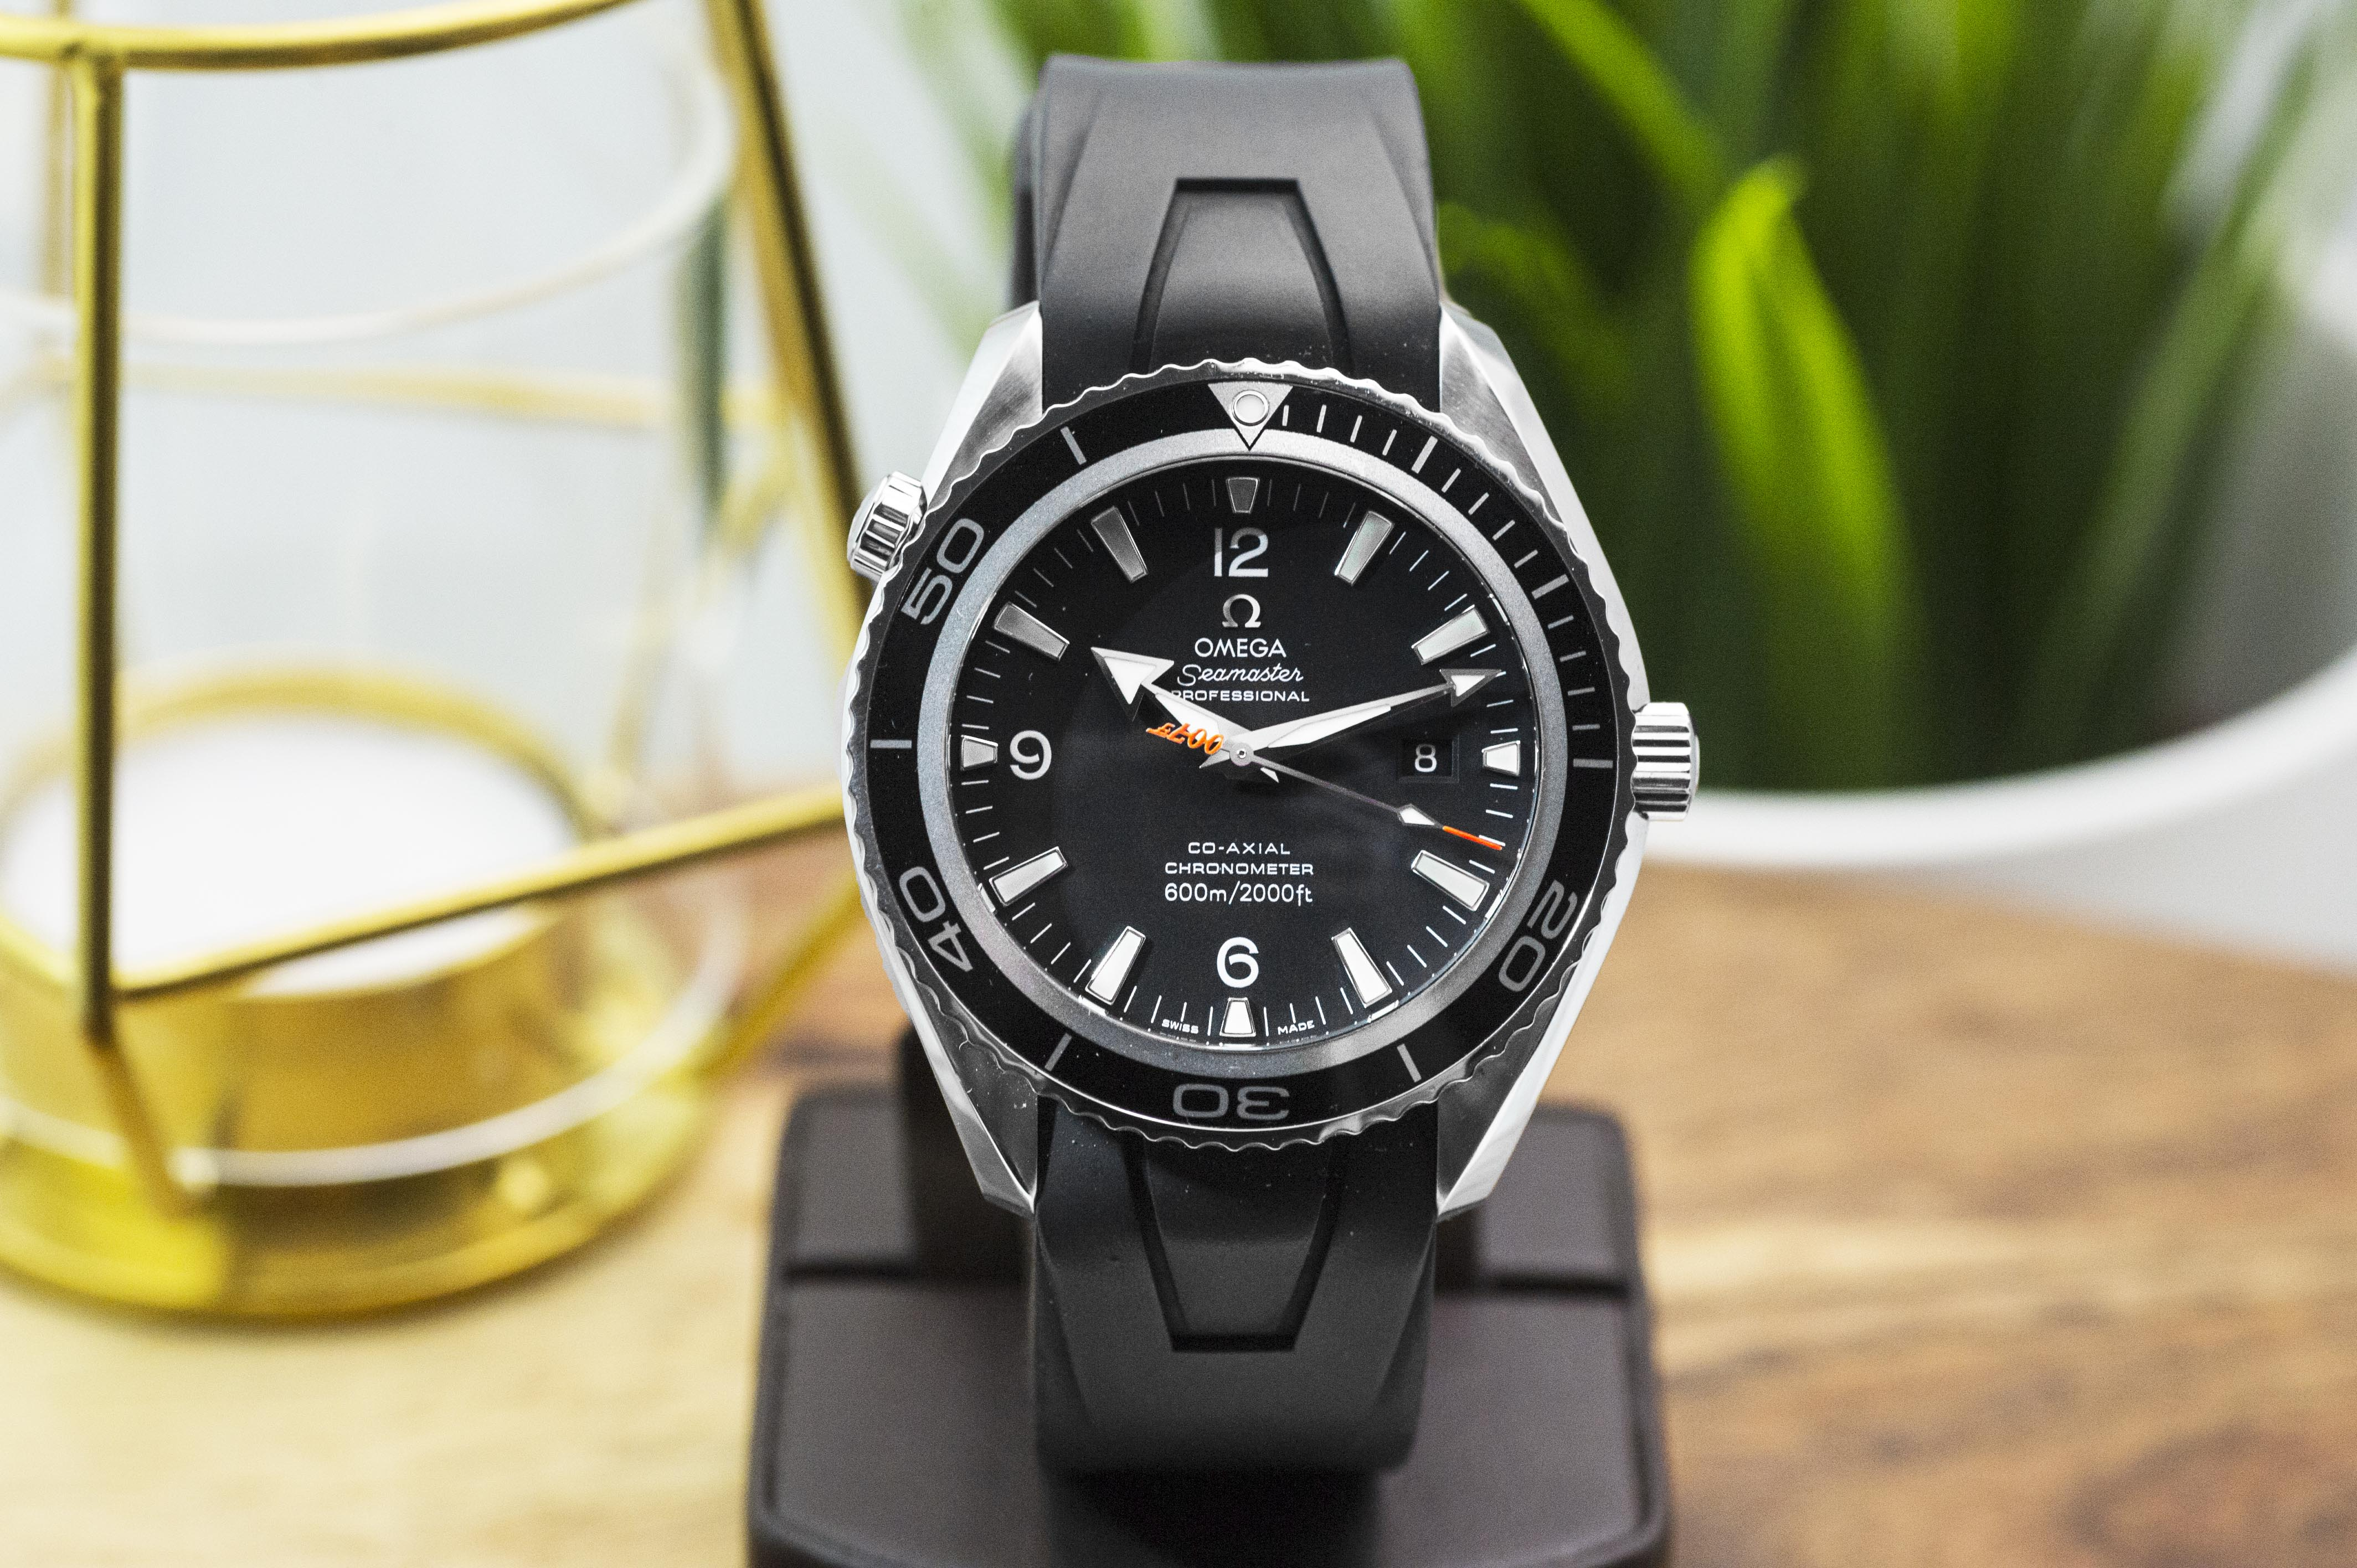 Omega-watches-Seamaster